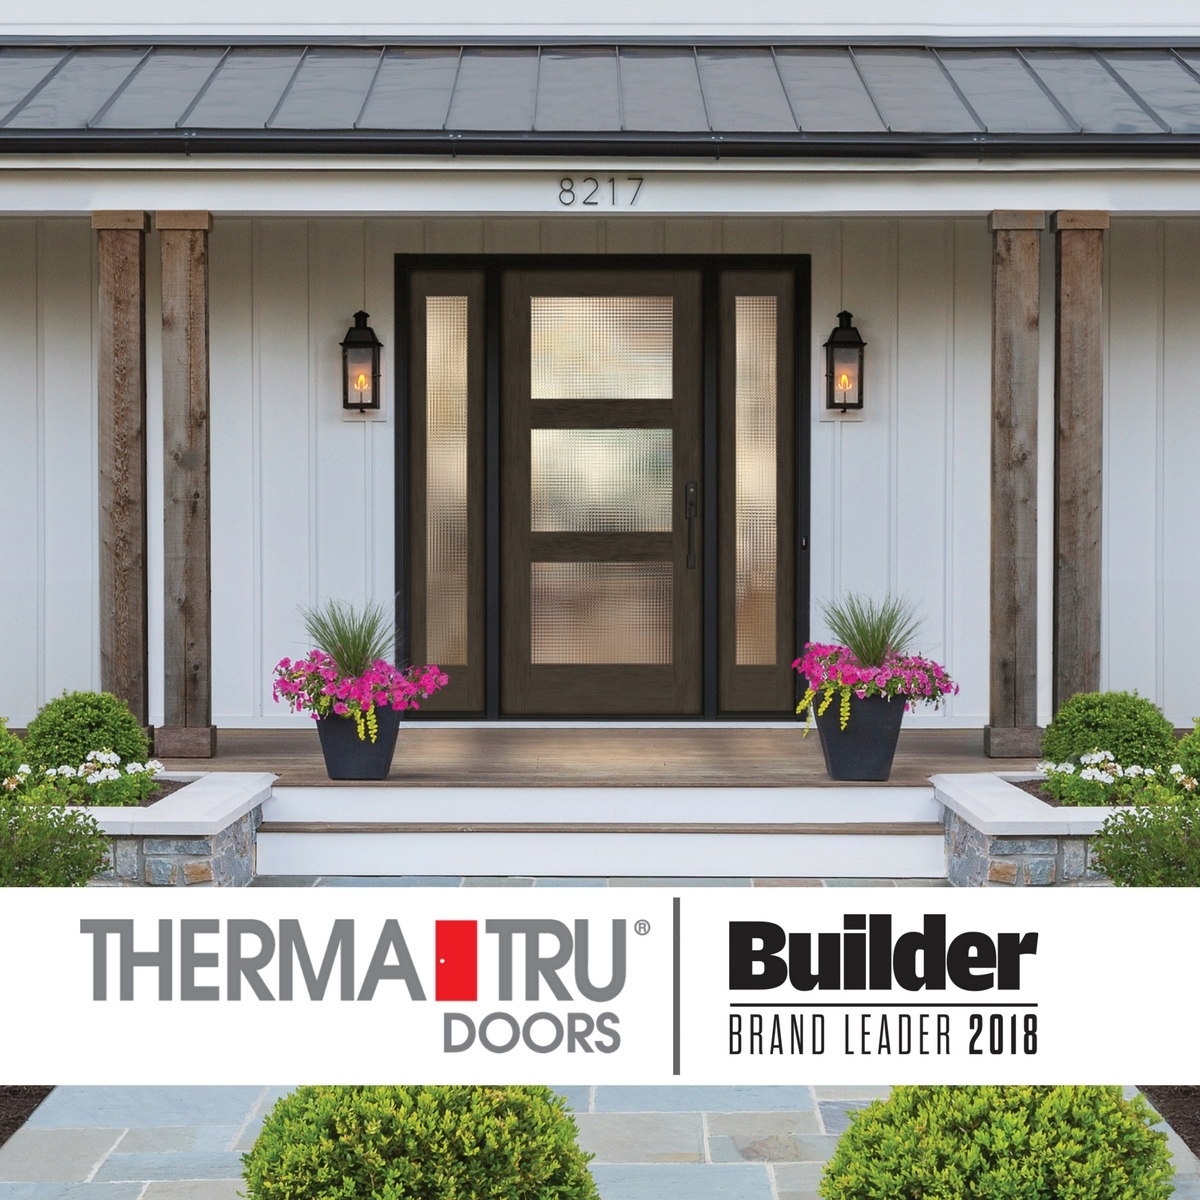 therma tru named brand used most for more than 20 consecutive